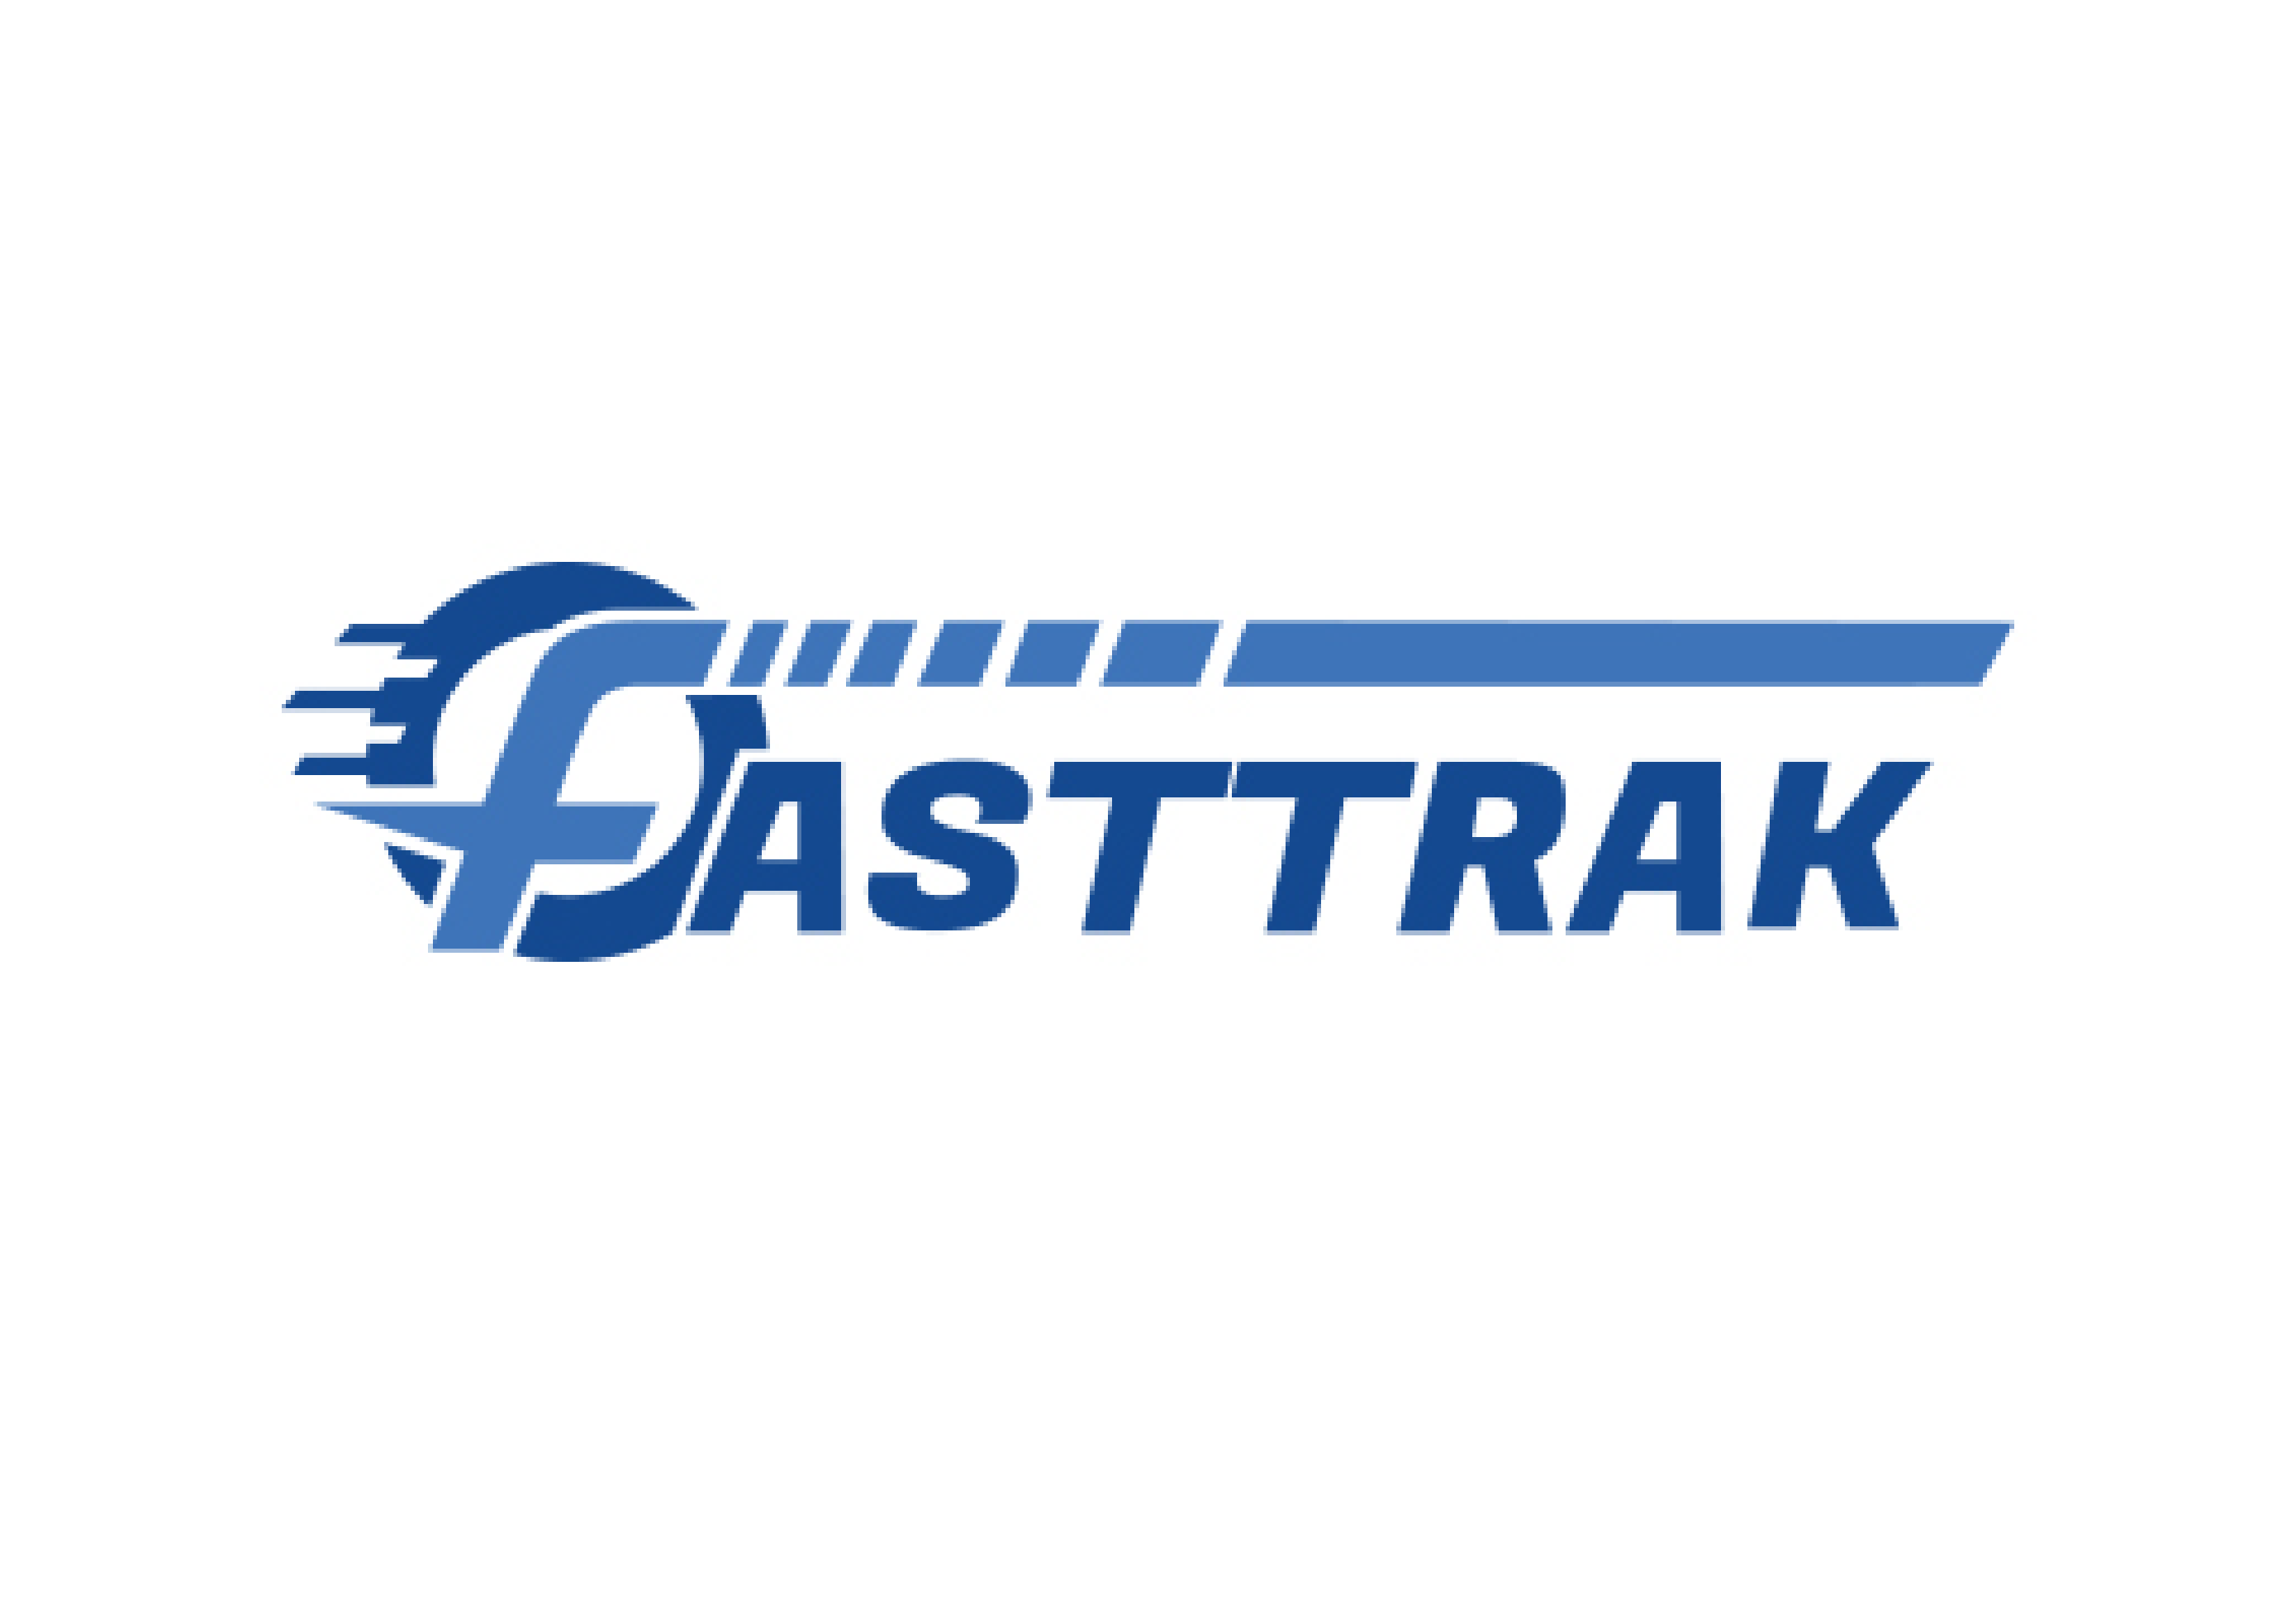 fasttrak payment processing